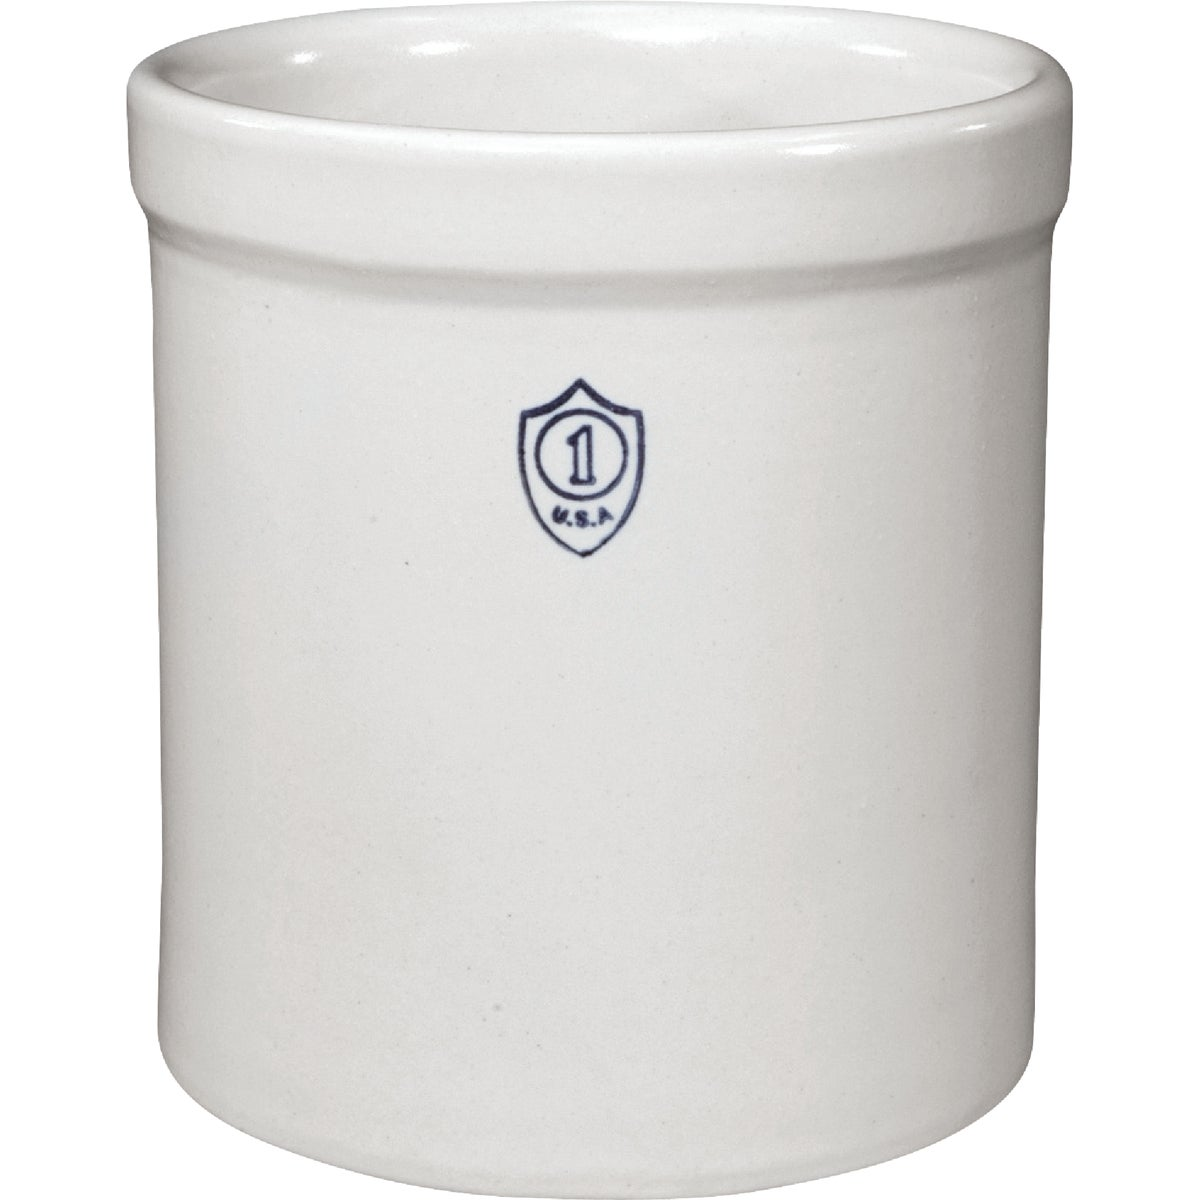 1 GALLON CROCK - 2429 by Ohio Stoneware